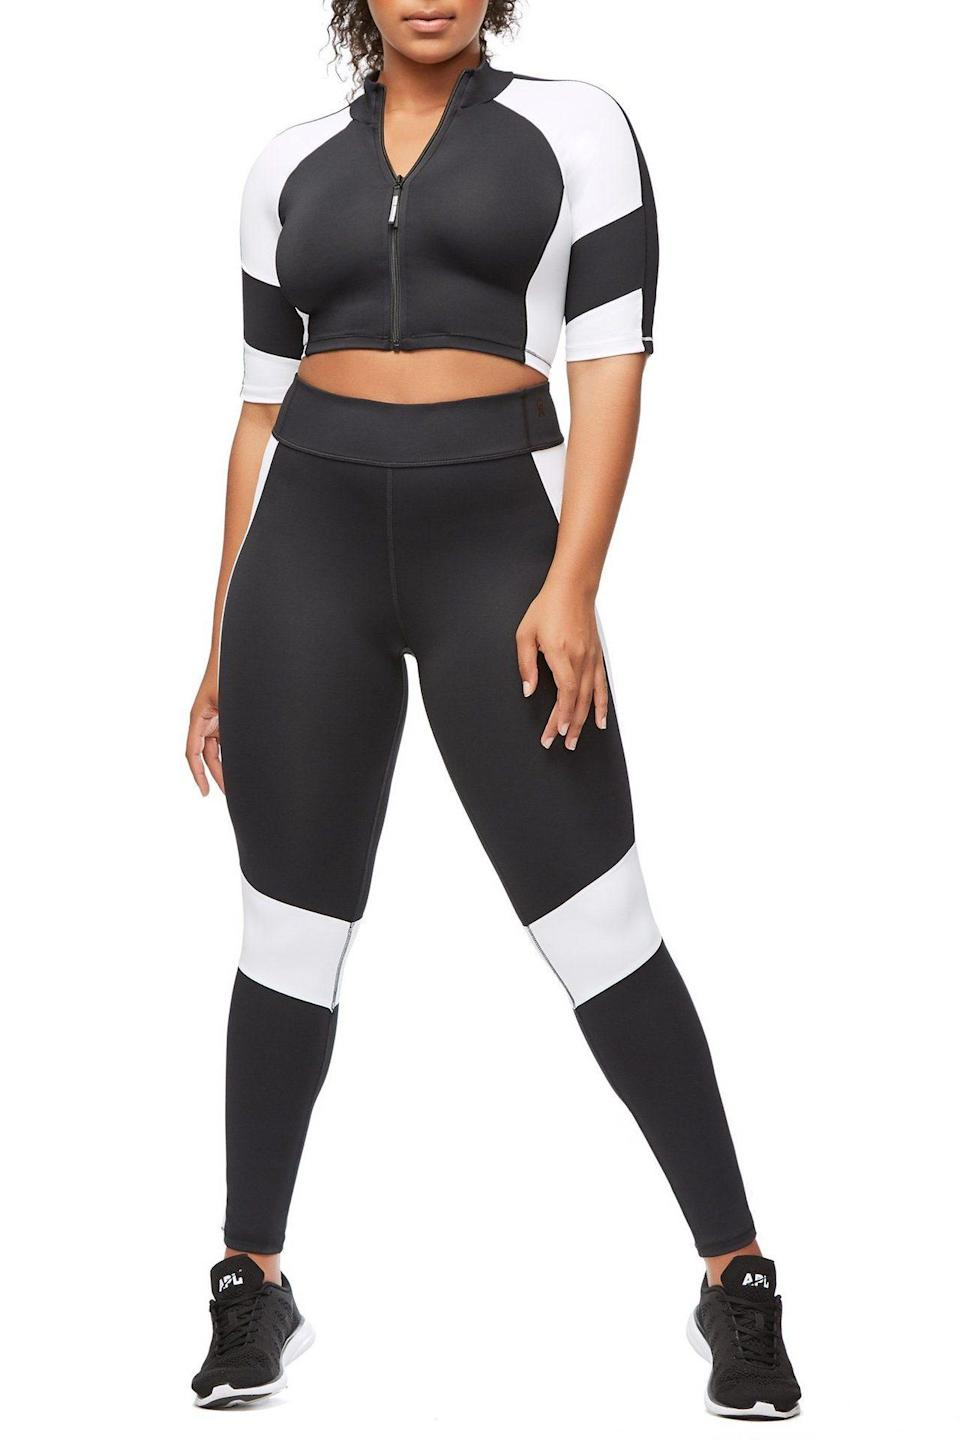 "<p>This classic black-and-white color-block two-piece is sporty and chic at the same time.<br><a href=""https://fave.co/2AuIDR9"" rel=""nofollow noopener"" target=""_blank"" data-ylk=""slk:Shop it:"" class=""link rapid-noclick-resp""><strong>Shop it:</strong> </a>The Dual Life Crop Top, $89 (take 25% off with code EXTRA25), <a href=""https://fave.co/2AuIDR9"" rel=""nofollow noopener"" target=""_blank"" data-ylk=""slk:goodamerican.com"" class=""link rapid-noclick-resp"">goodamerican.com</a><br><a href=""https://fave.co/2AuIGfN"" rel=""nofollow noopener"" target=""_blank"" data-ylk=""slk:Shop it:"" class=""link rapid-noclick-resp""><strong>Shop it:</strong> </a>The Dual Life Legging, $129 (take 25% off with code EXTRA25), <a href=""https://fave.co/2AuIGfN"" rel=""nofollow noopener"" target=""_blank"" data-ylk=""slk:goodamerican.com"" class=""link rapid-noclick-resp"">goodamerican.com</a> </p>"